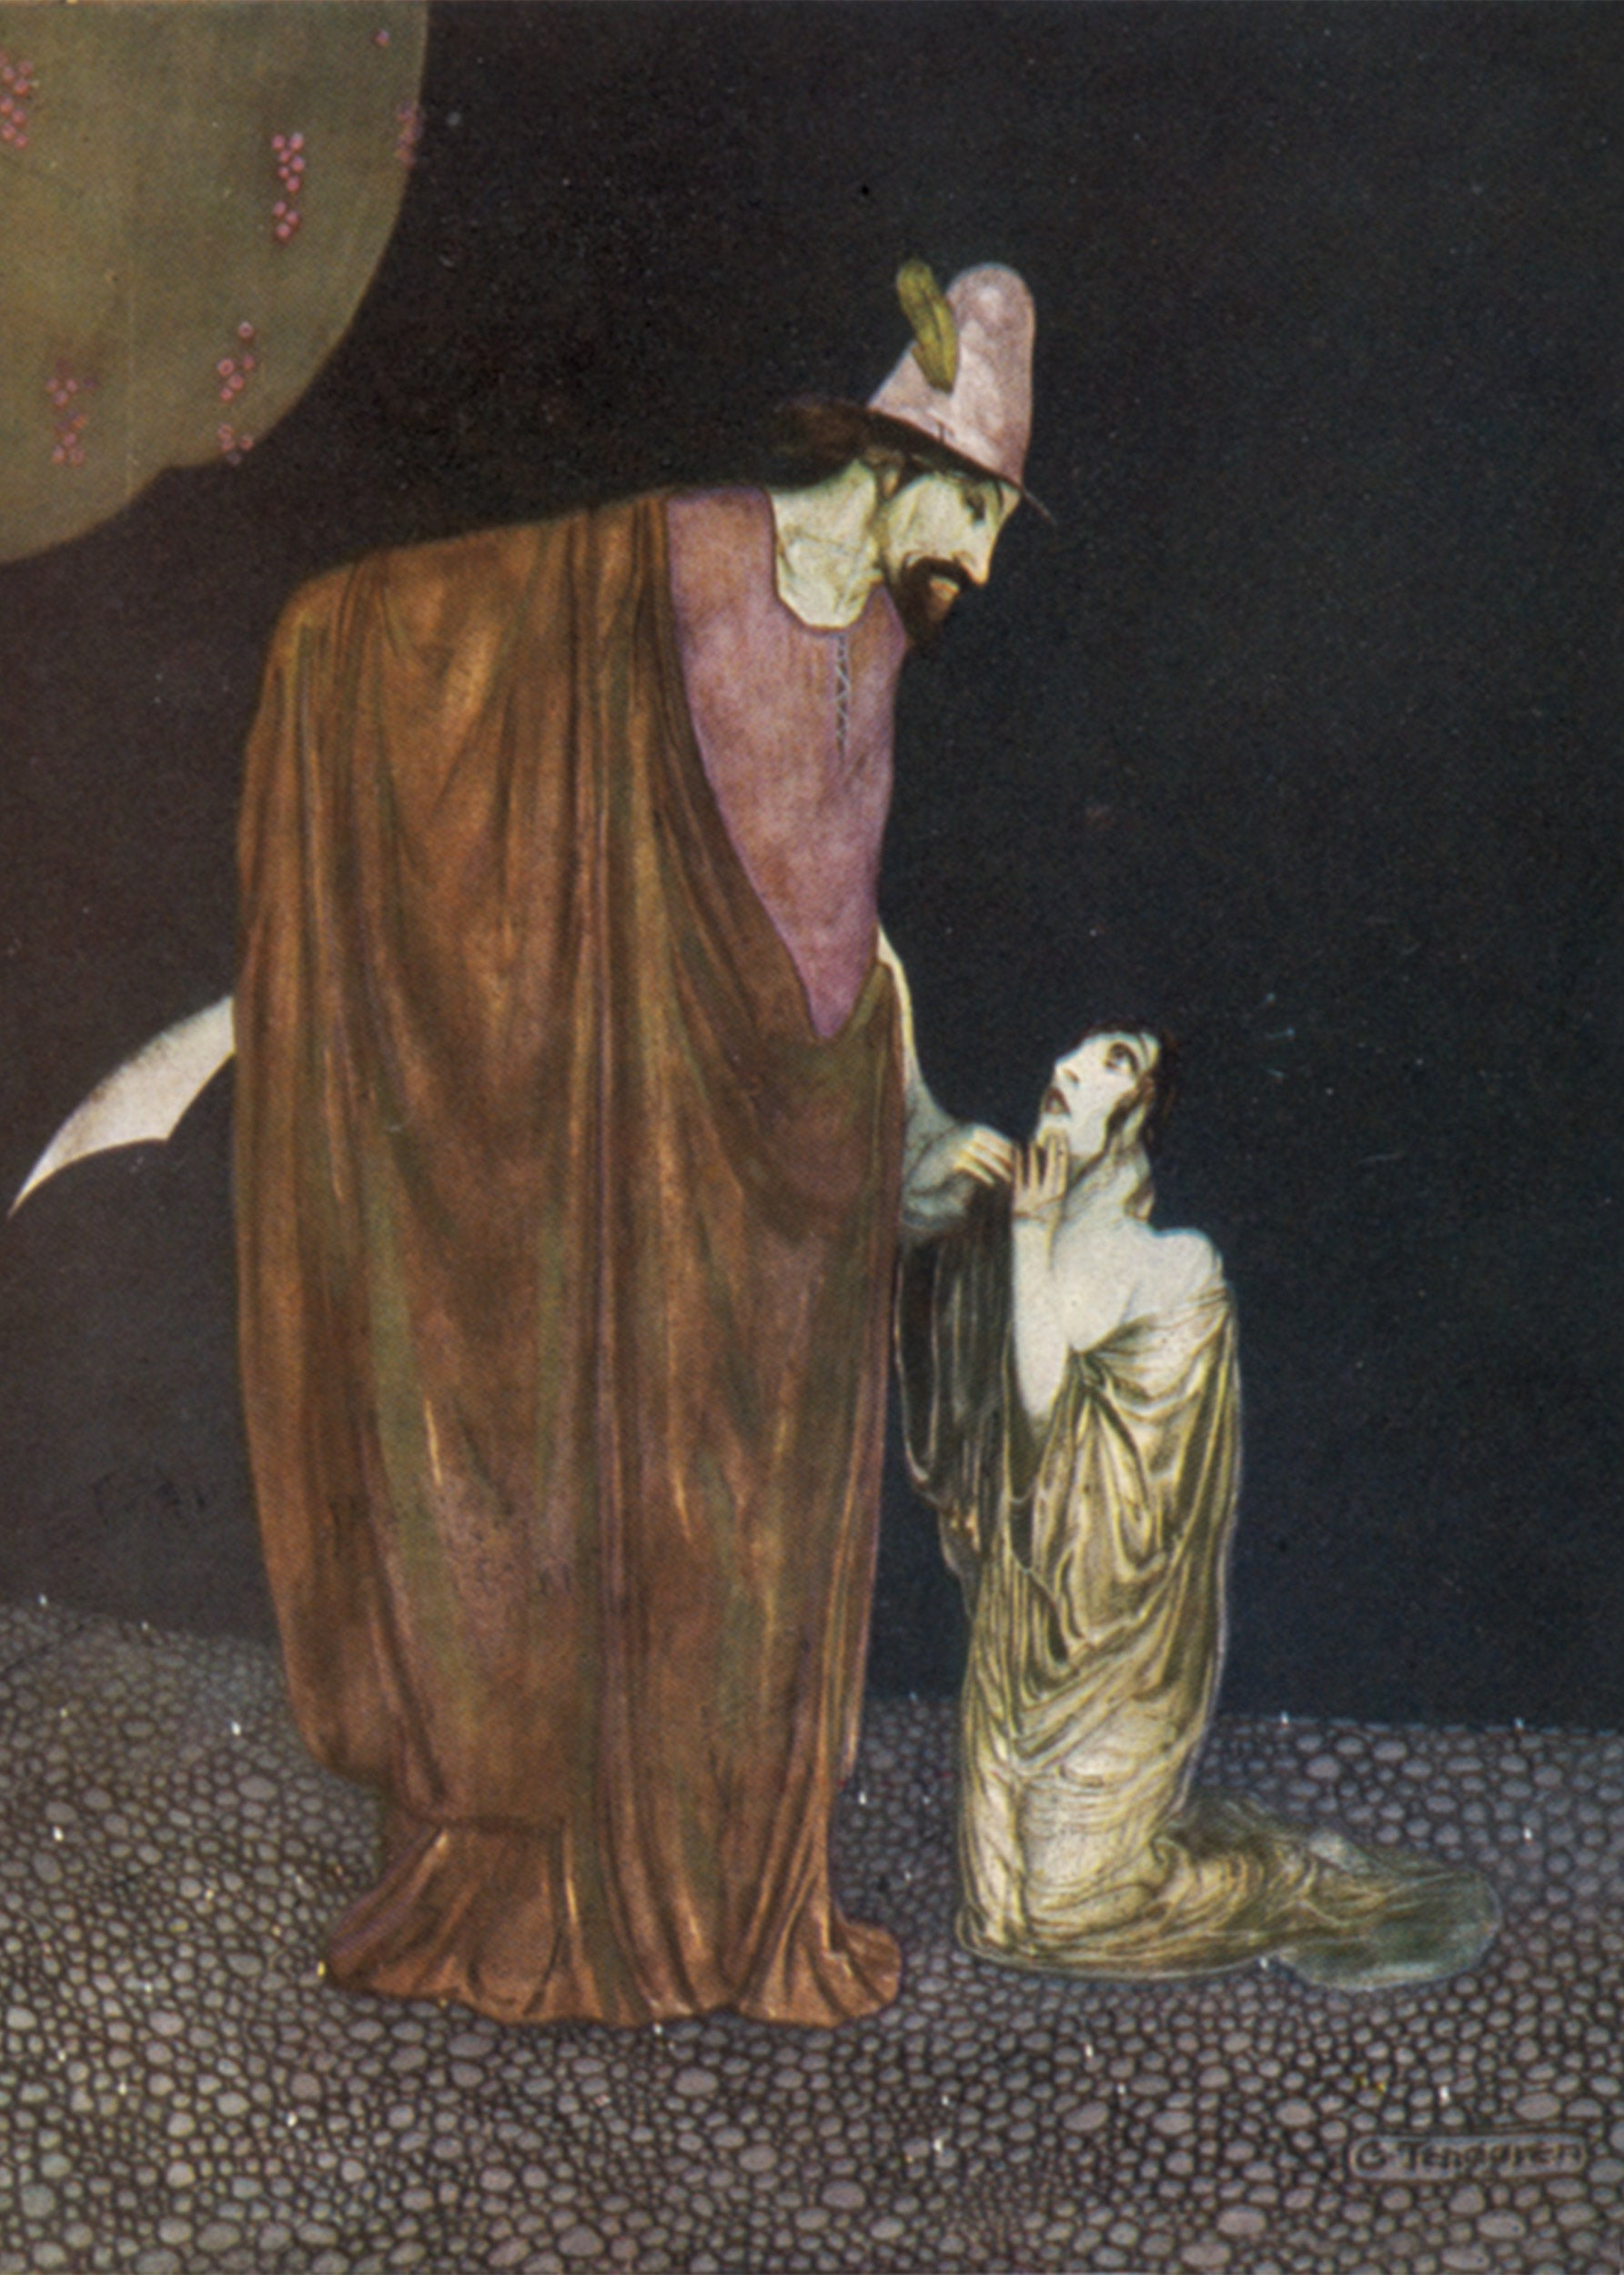 A 1923 illustration of Snow White and the hunter by Gustaf Tenggren.